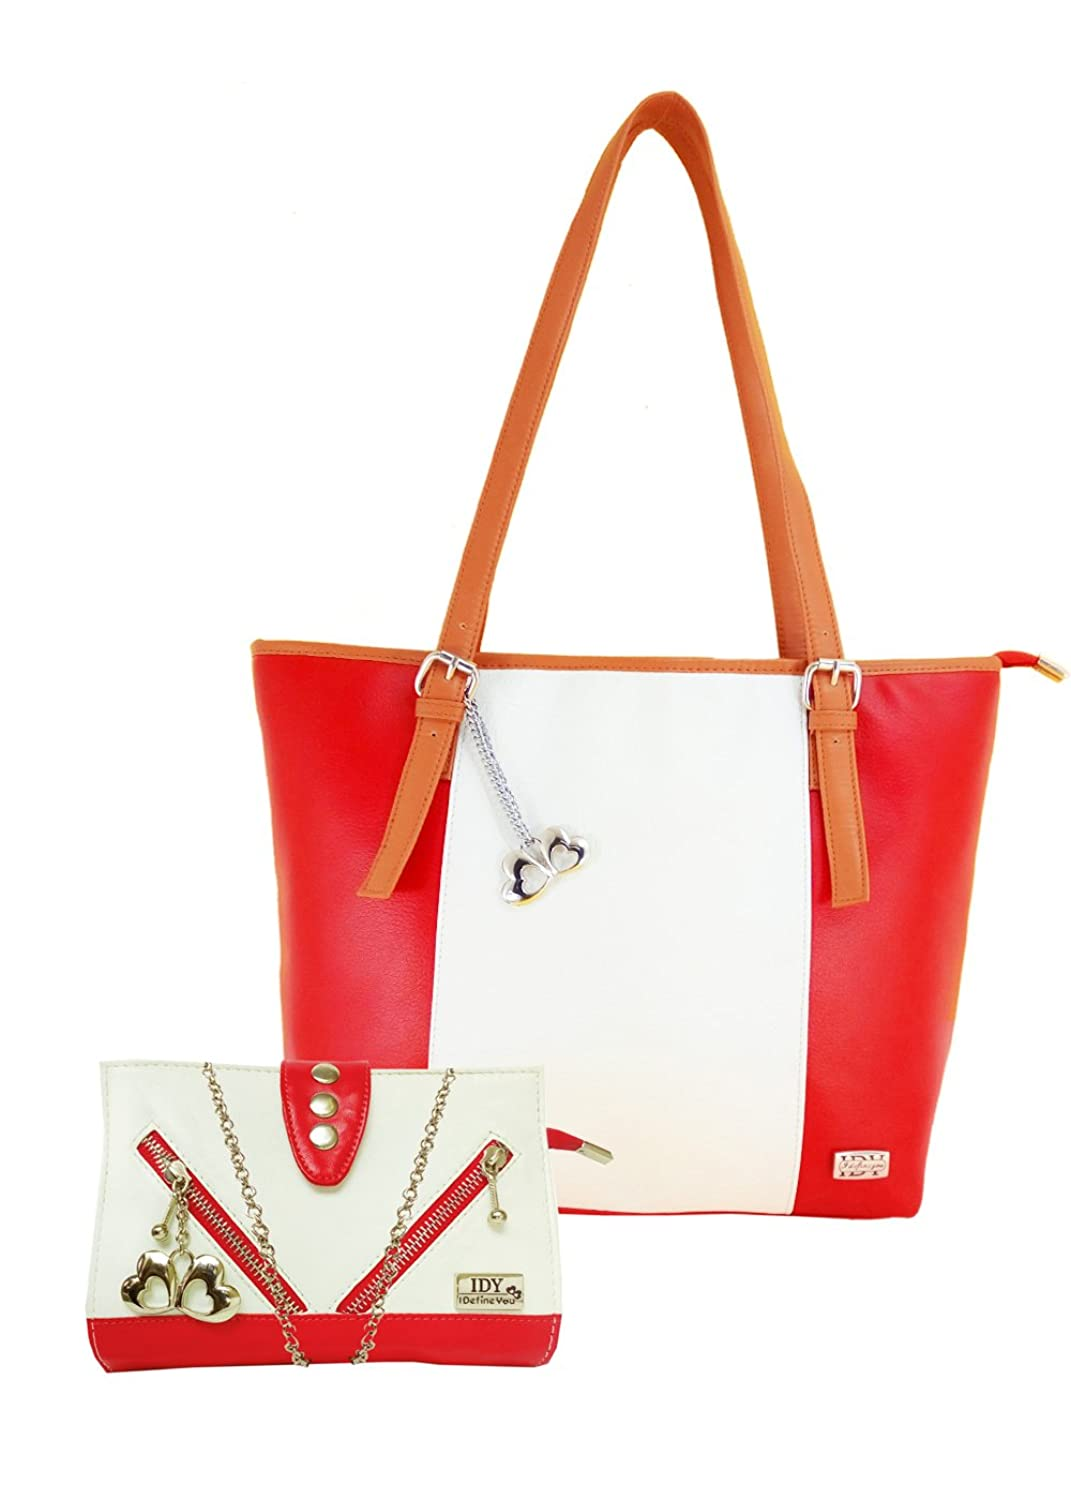 Anglopanglo Womens Bag Combo